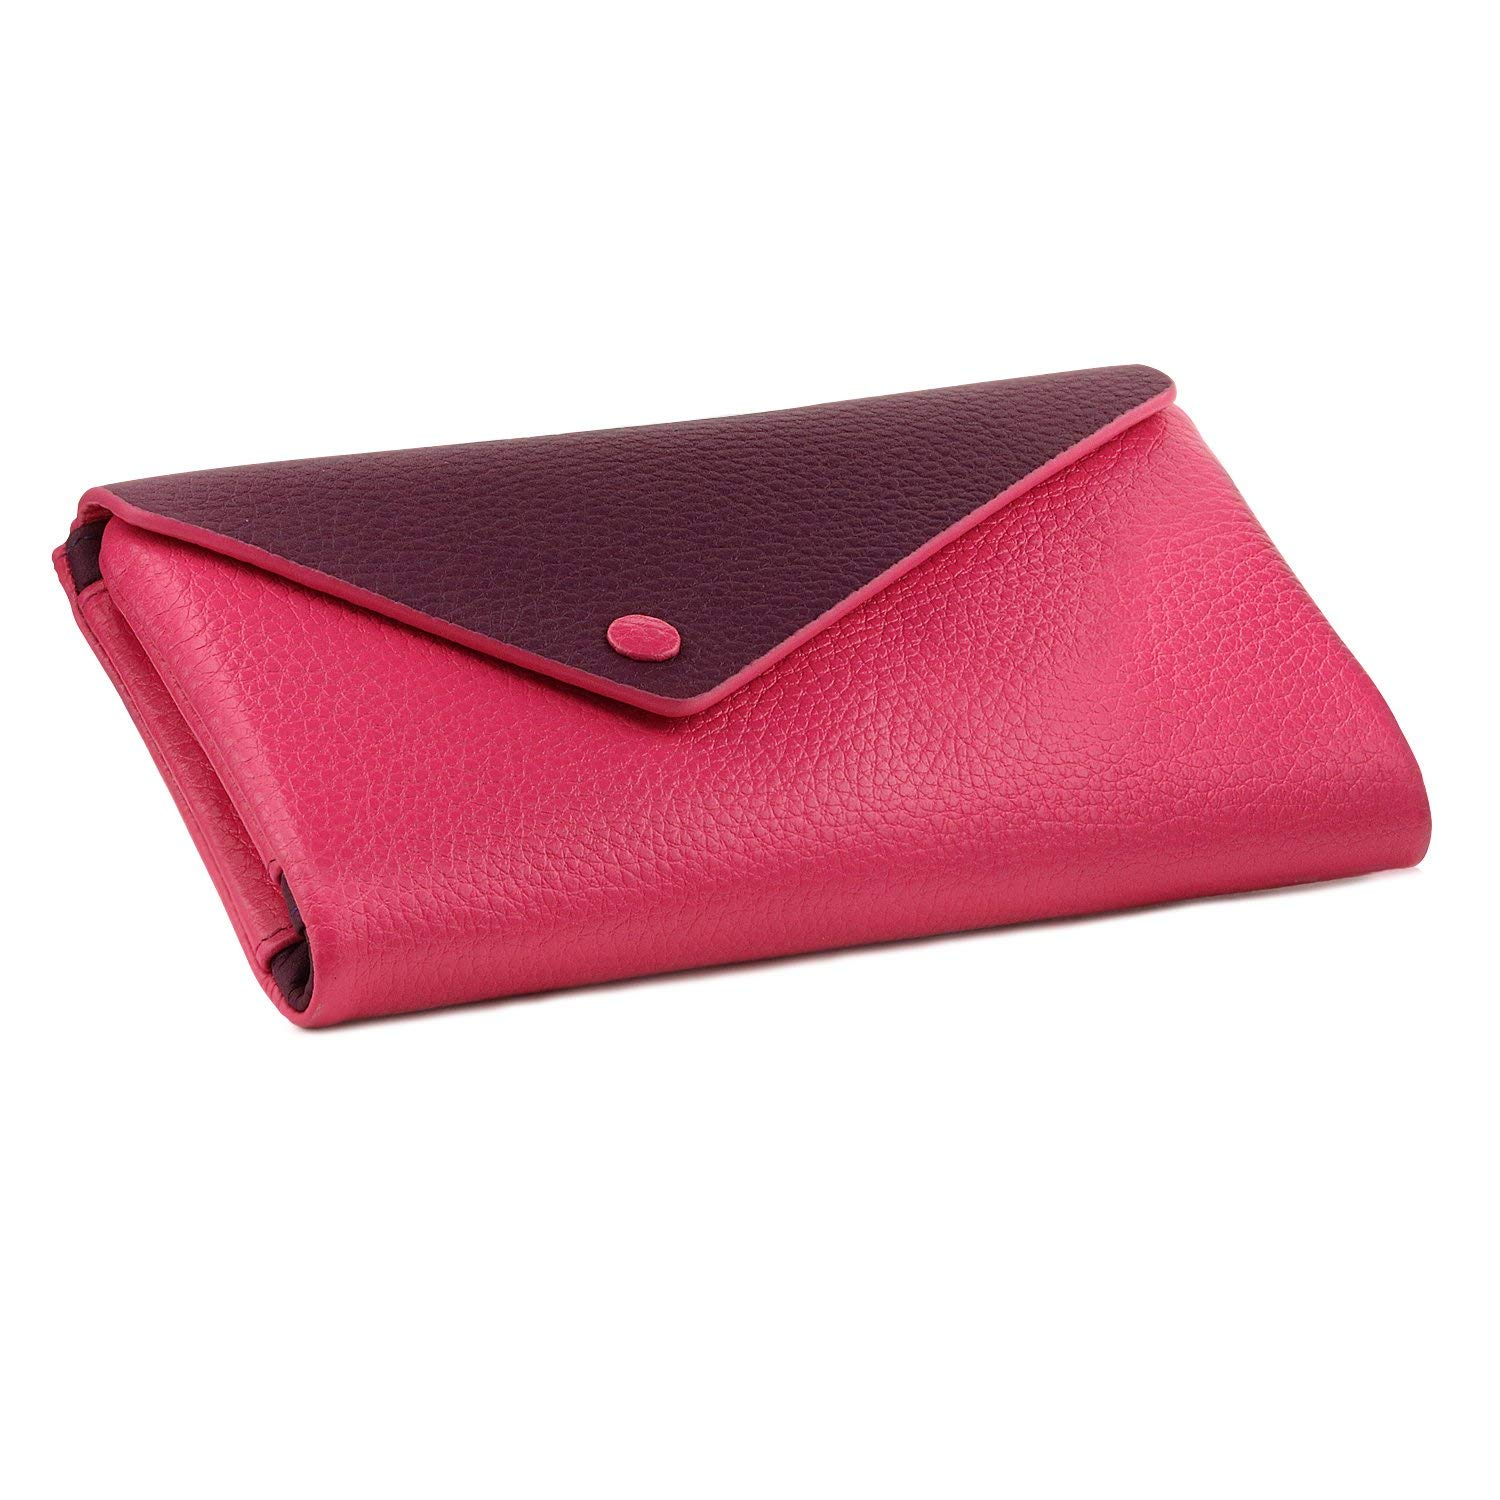 OTTO Genuine Leather Envelope Wallet with Phone Compatible Slots - RFID Blocking - Unisex